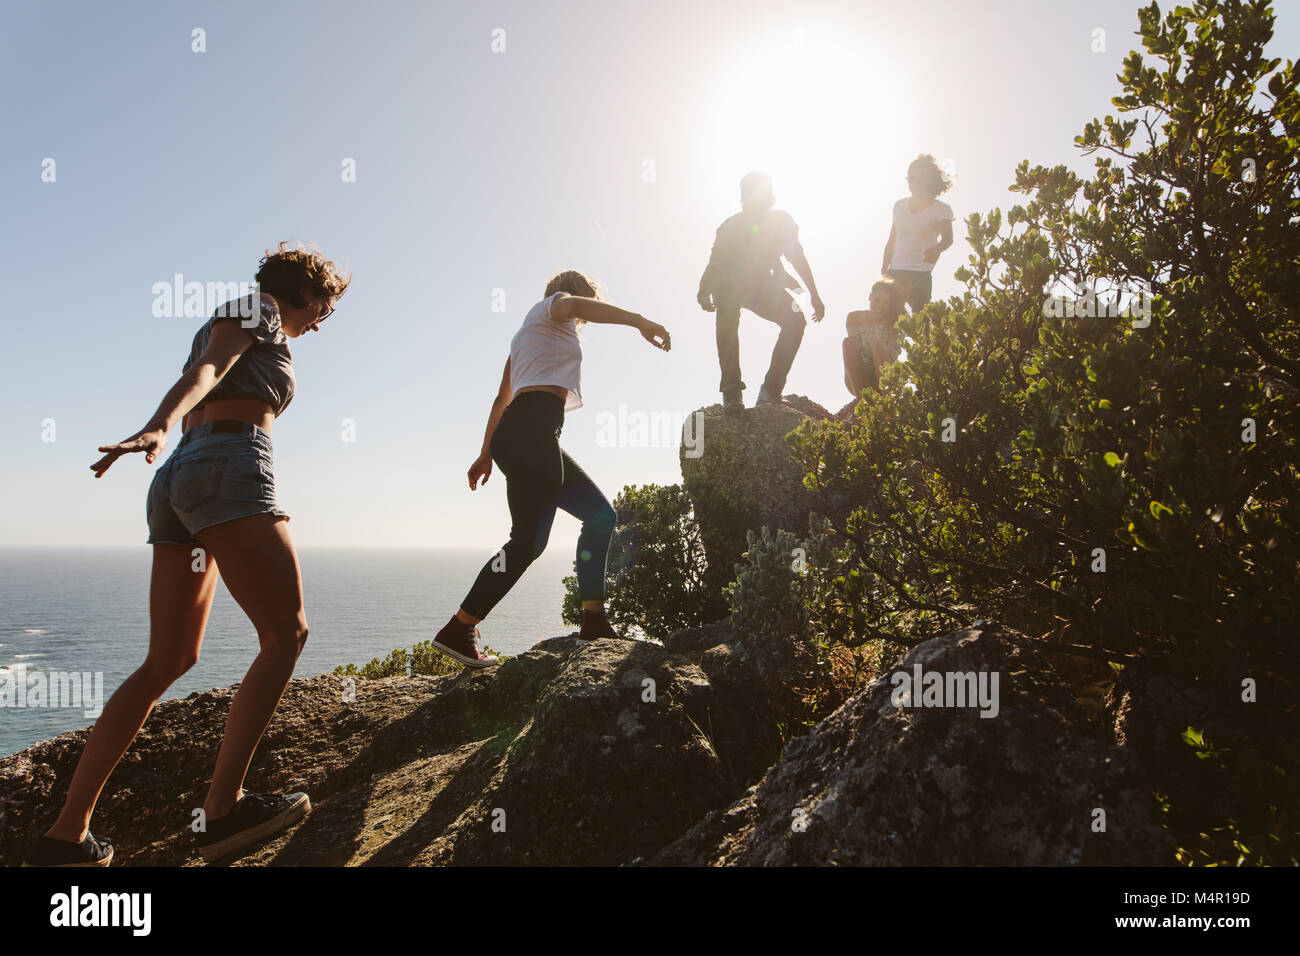 Group of friends on a mountain. Young people on mountain hike on a summer day. Men and women climbing rocks. - Stock Image